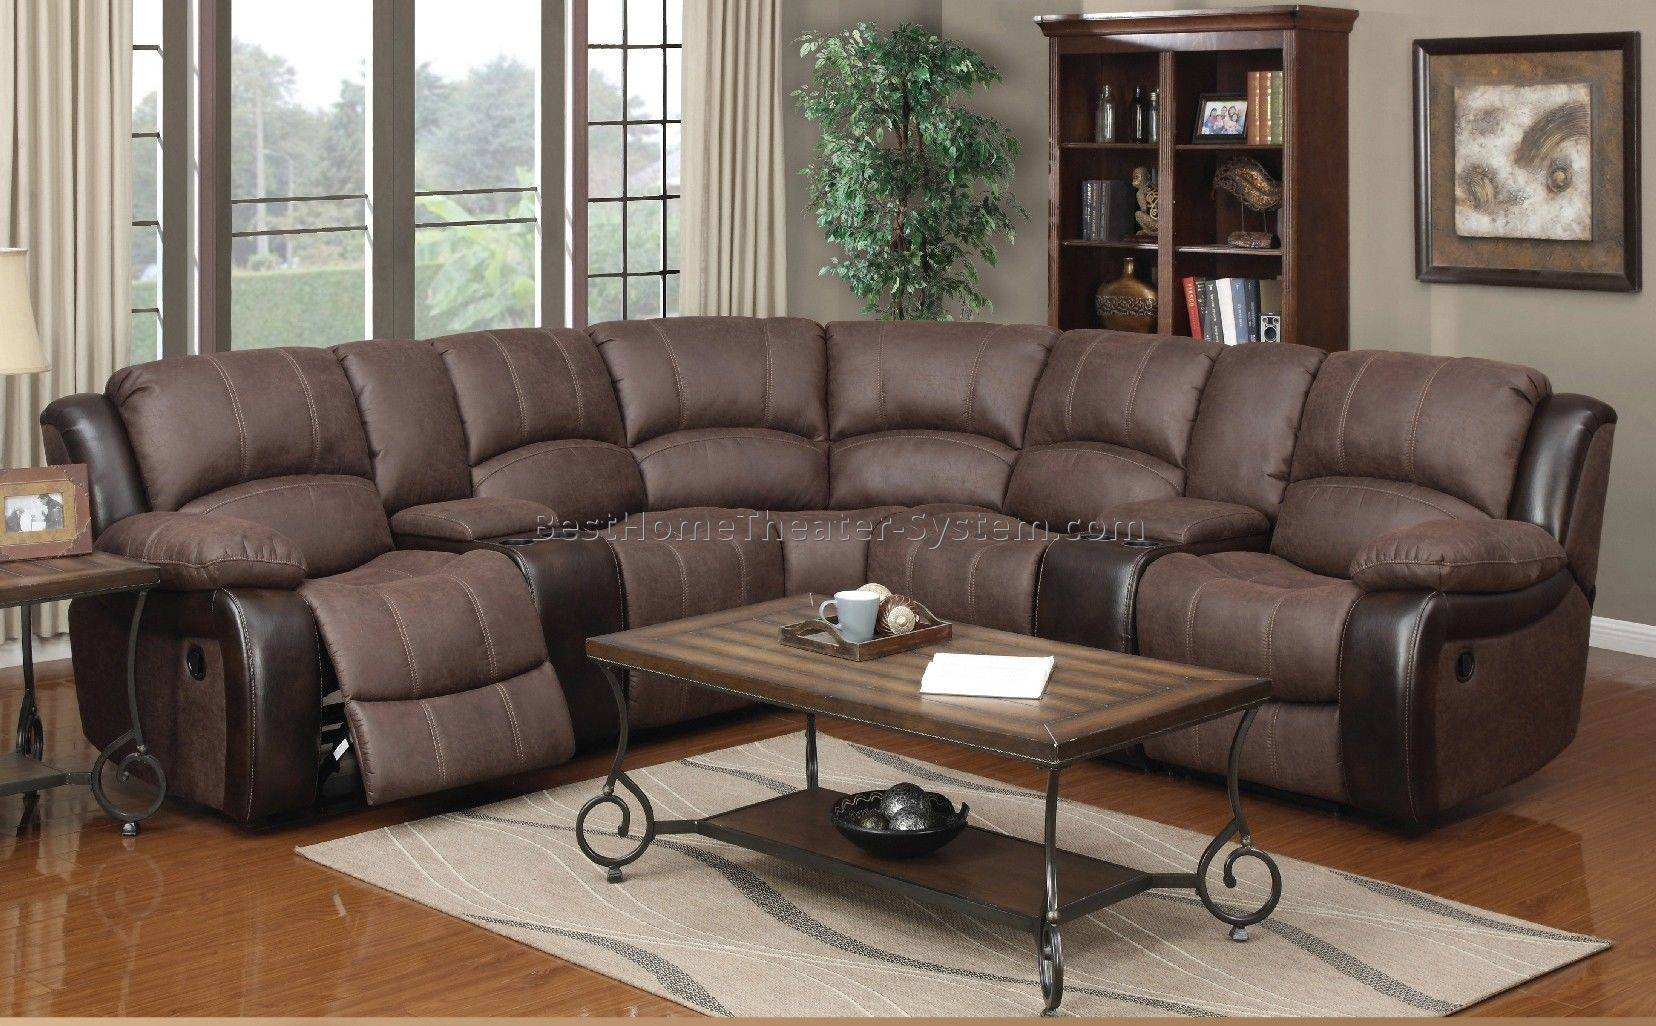 Sectional Home Theater Seating 5 | Best Home Theater Systems regarding Theatre Sectional Sofas (Image 22 of 30)